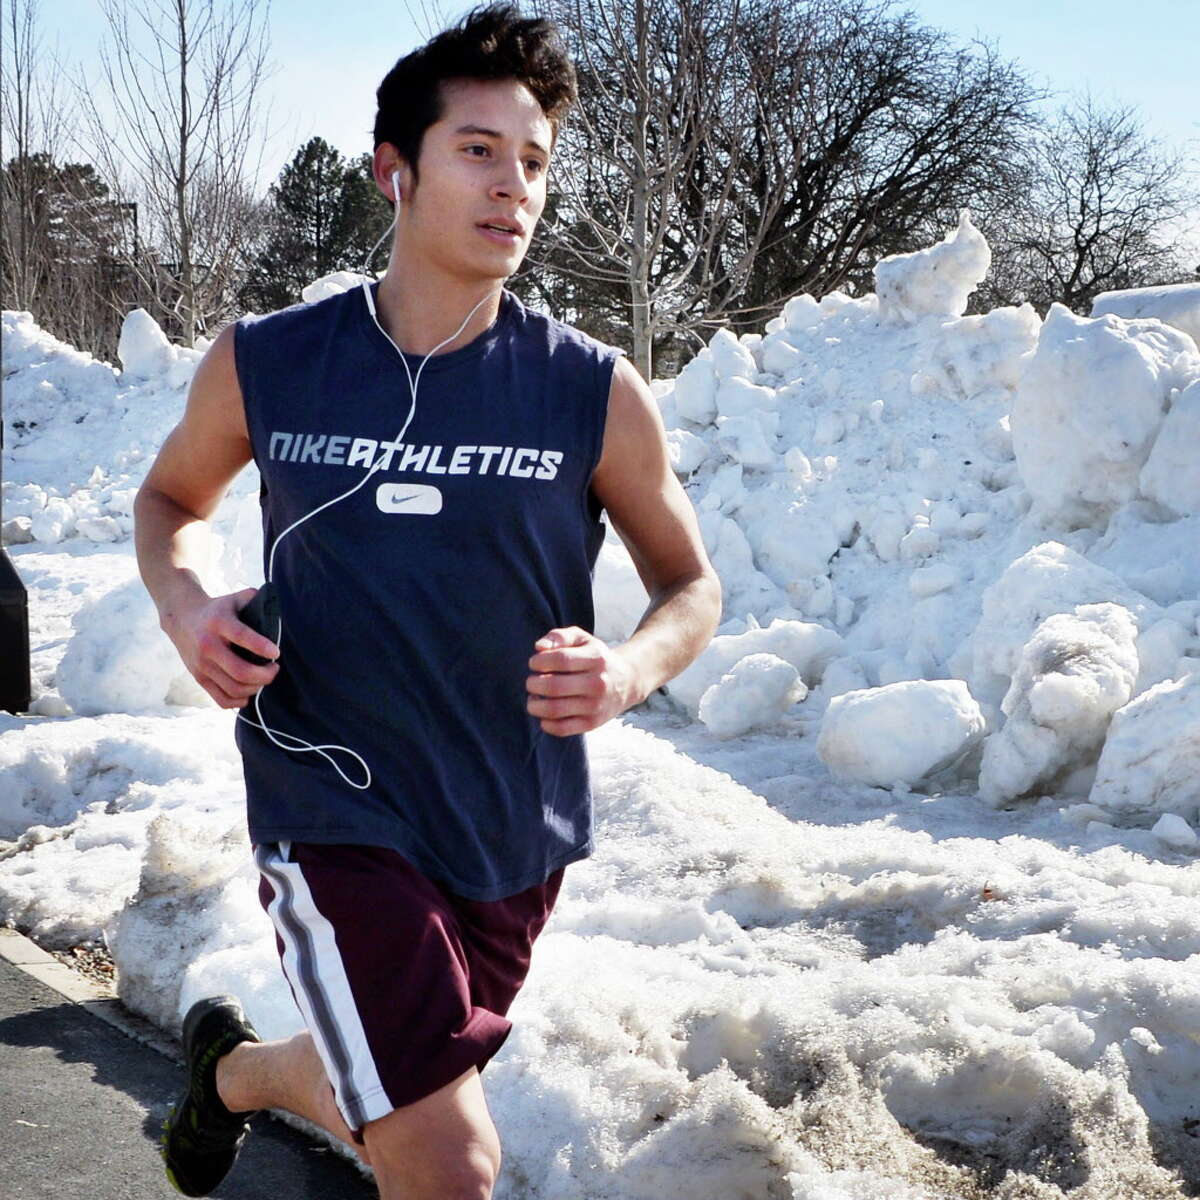 Dressed in shorts and t-shirt, UAlbany student Rogger Gutierrez of Kingston runs past snow banks on the main campus as temps finally begin to warm up Friday March 7, 2014, in Albany, NY. (John Carl D'Annibale / Times Union)